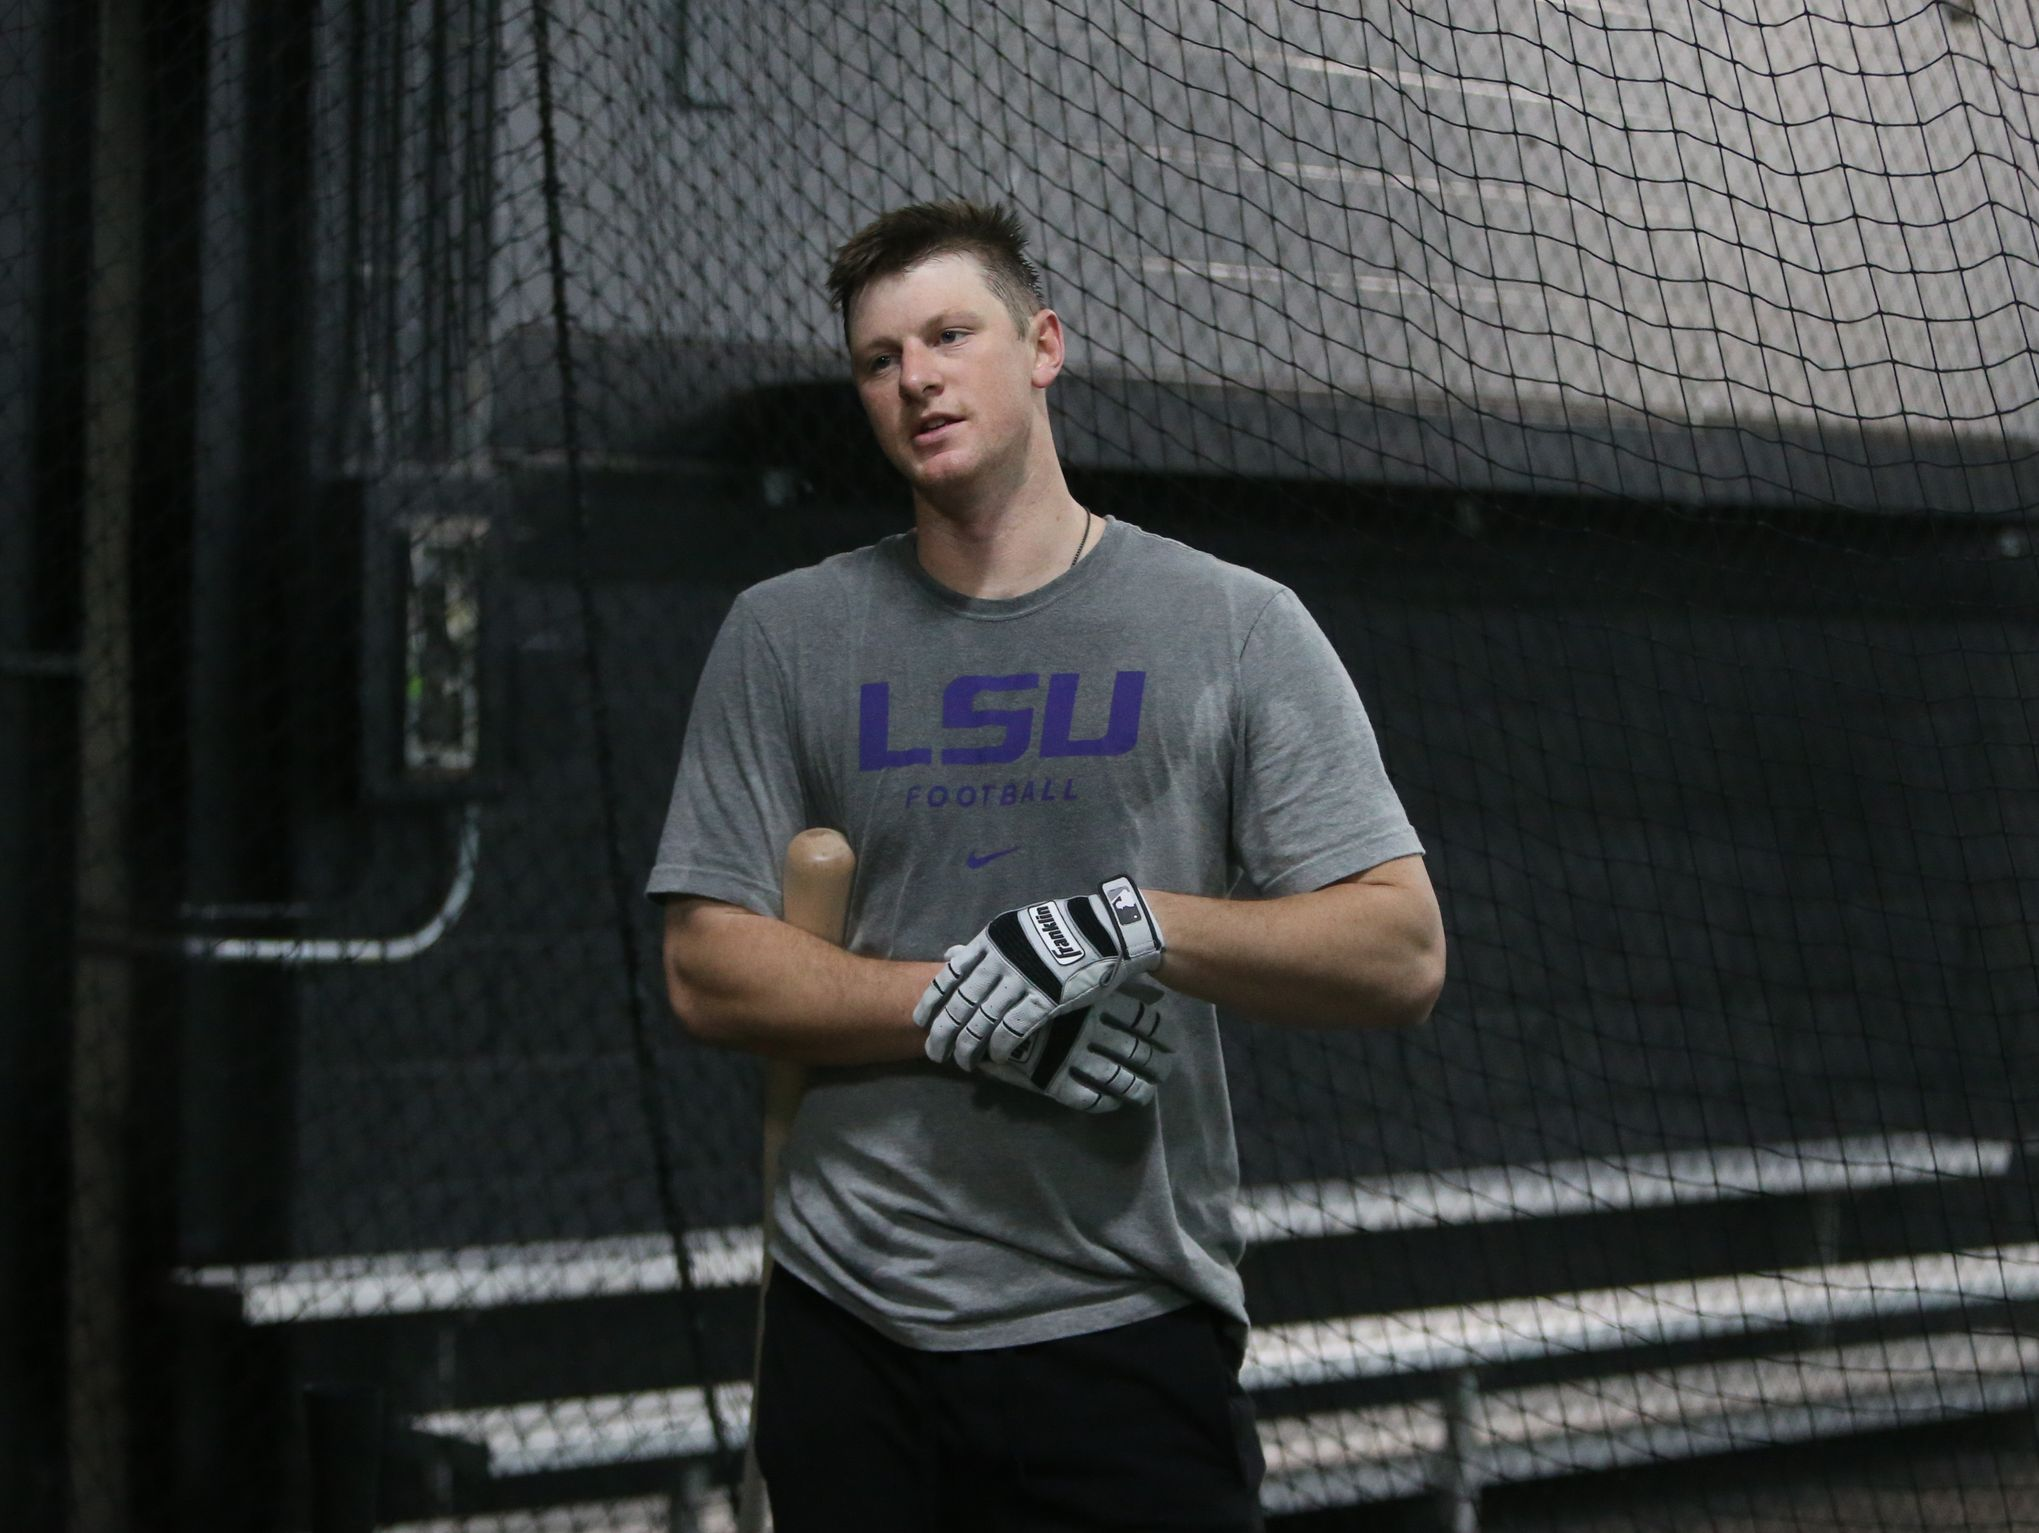 Colorado Rockies All-Star DJ LeMahieu goes through batting practice at 2SP Sports Performance facility in Madison Heights Michigan on Jan. 16, 2017.